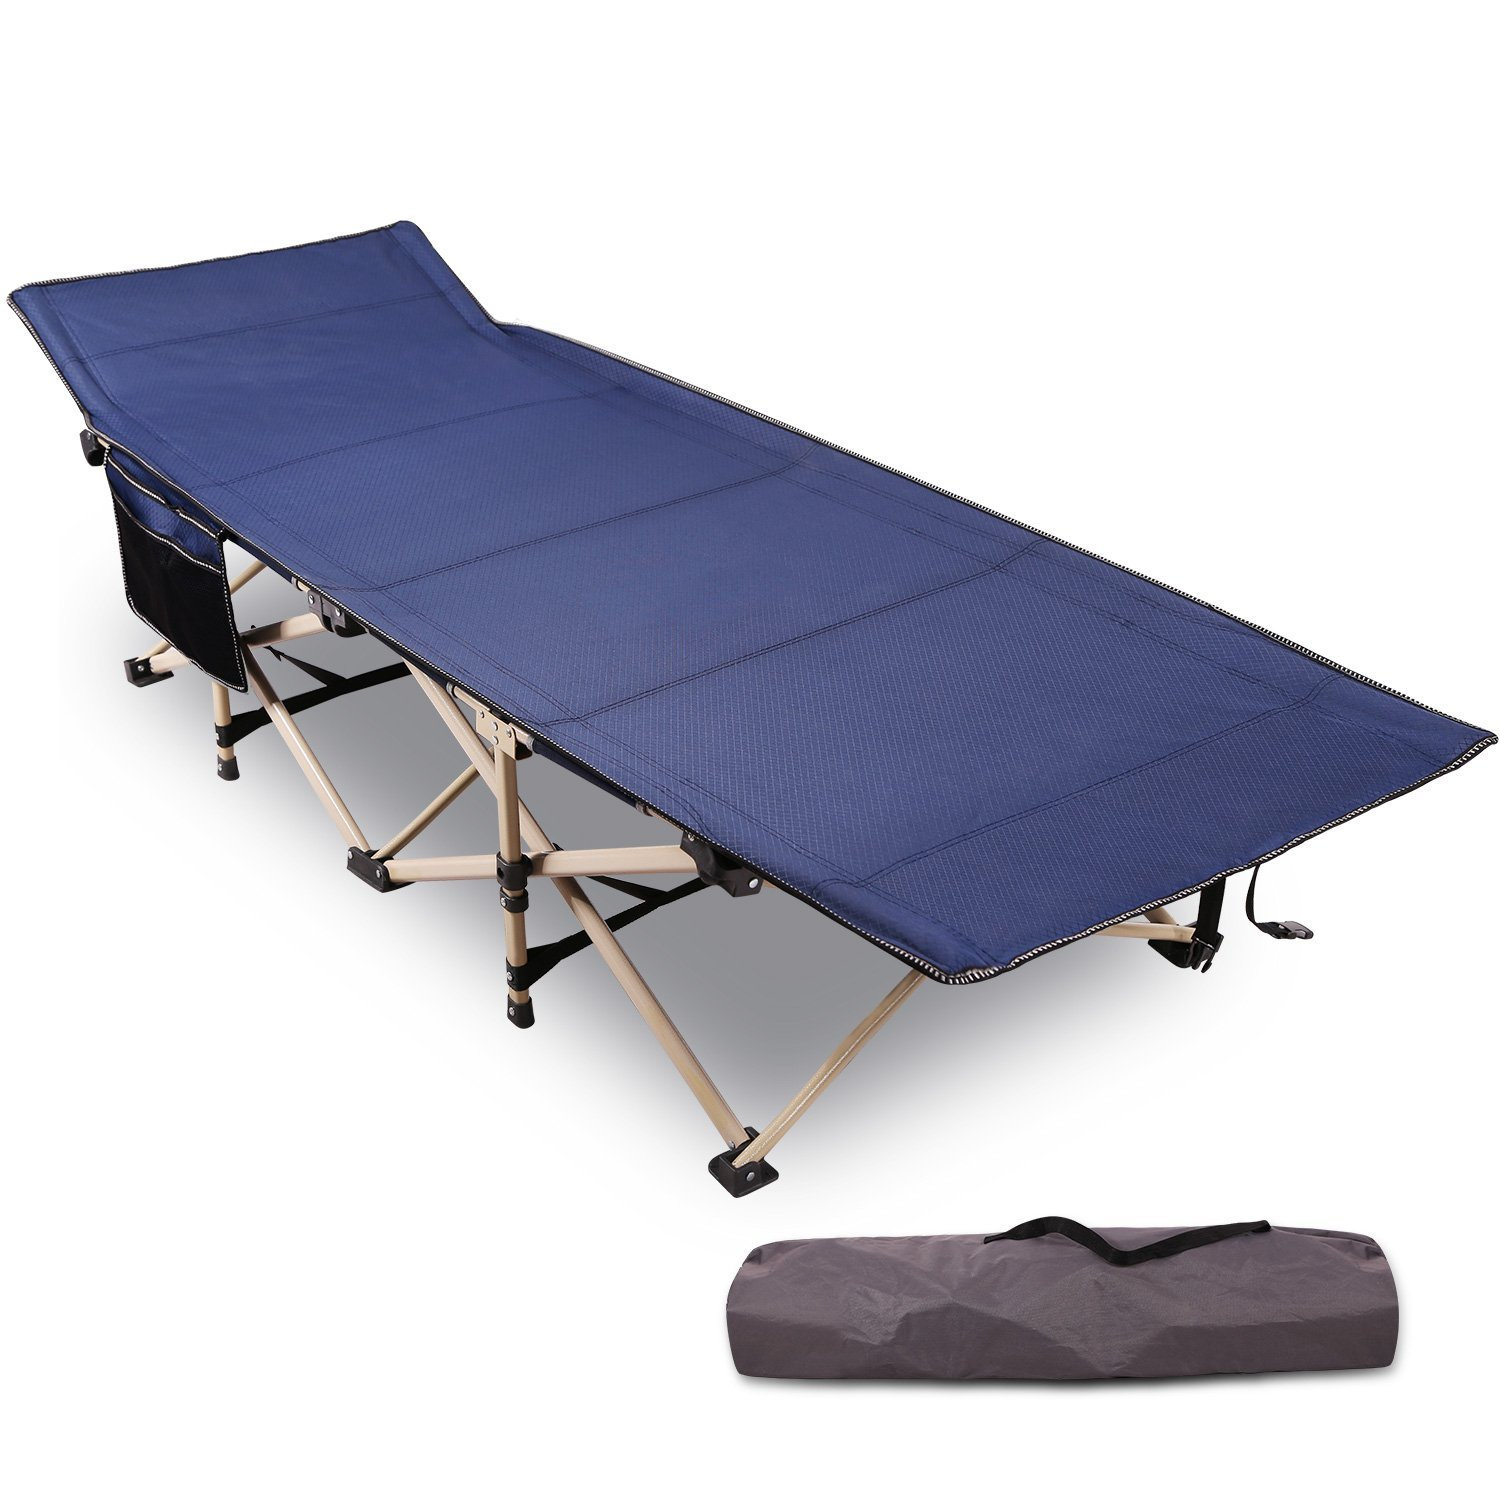 REDCAMP Folding Camping Cots for Adults Heavy Duty, 28'' Extra Wide Sturdy Portable Sleeping Cot for Camp Office Use, Blue by REDCAMP